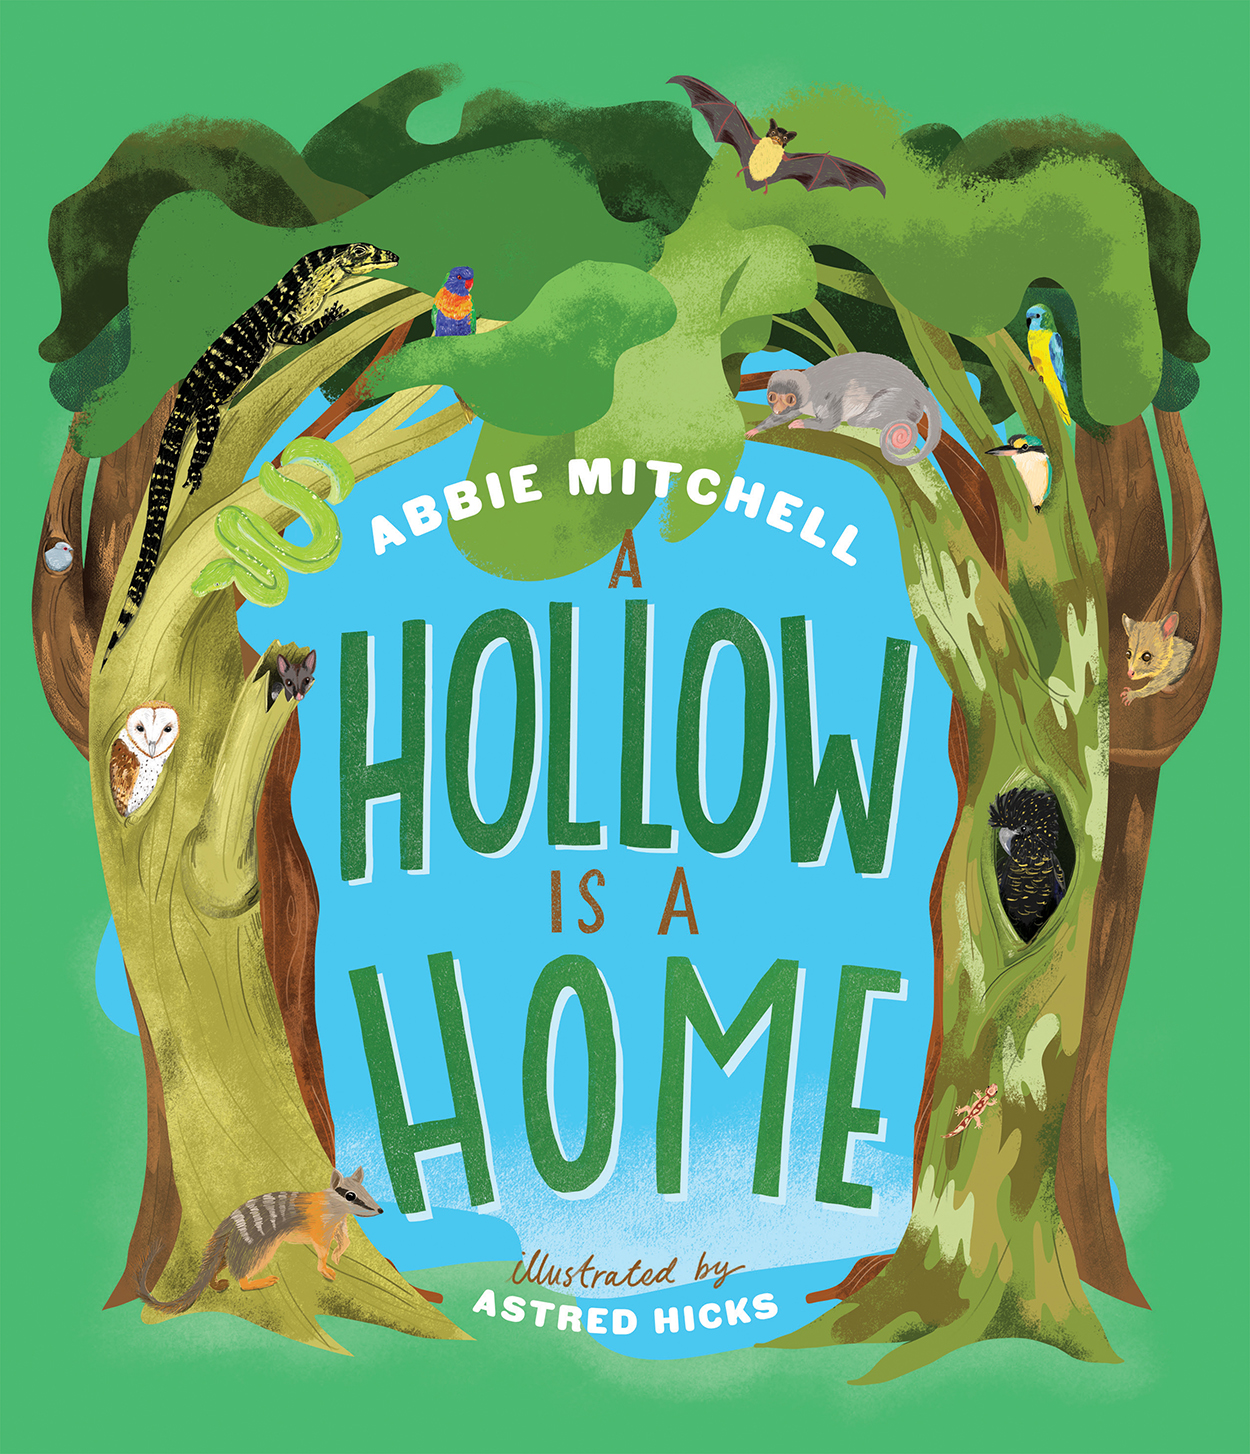 A Hollow is a Home, book cover